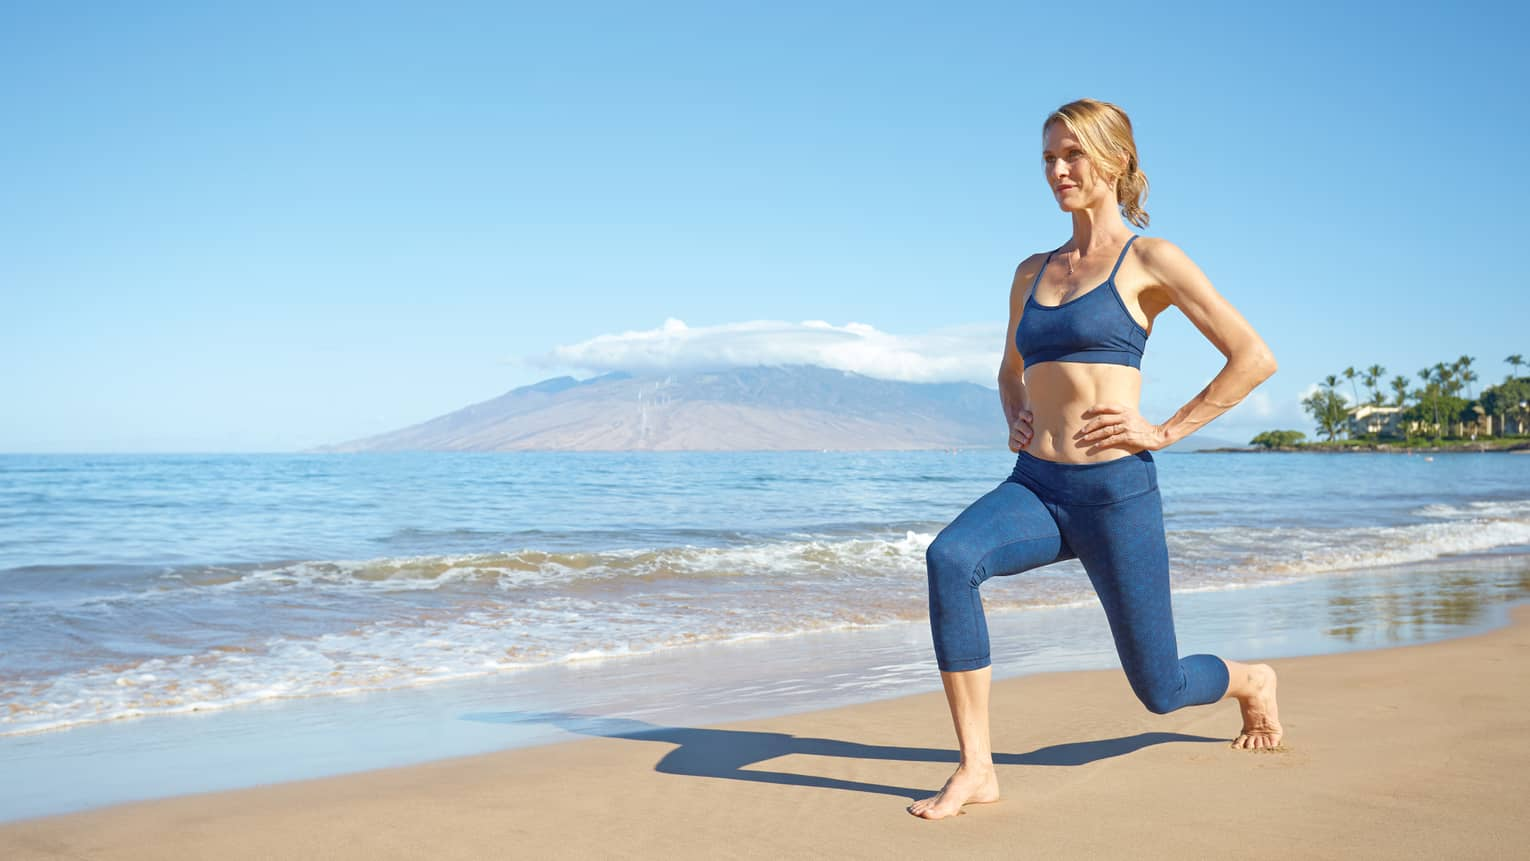 Woman in workout gear does yoga pose on beach by shore